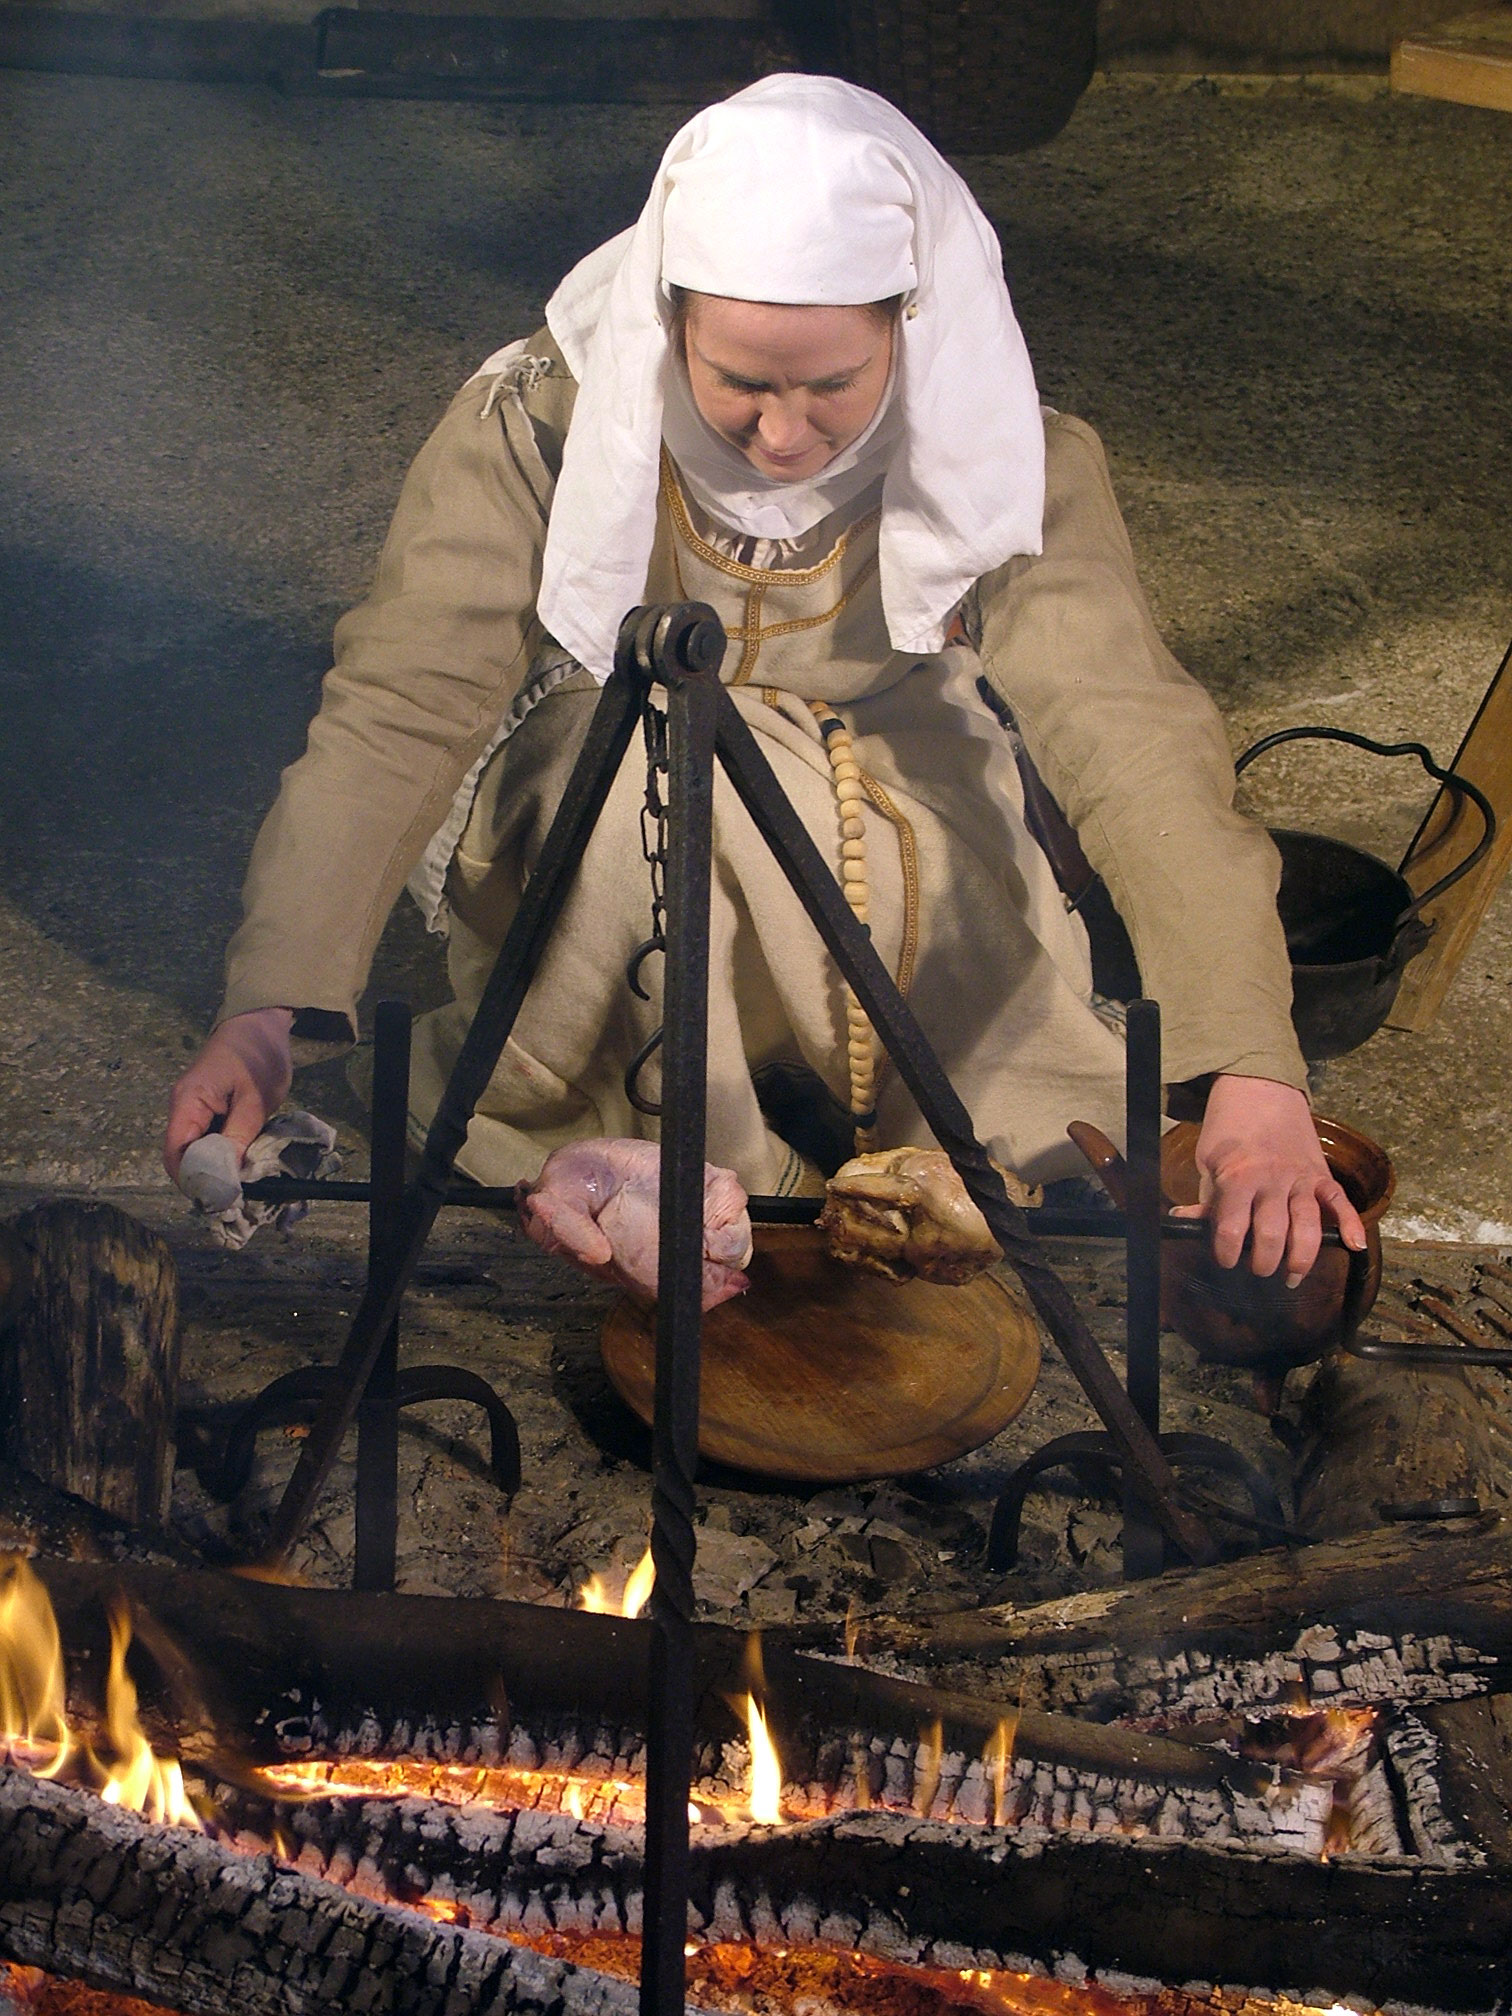 Roasting Chickens the medieval way © Diane Earl